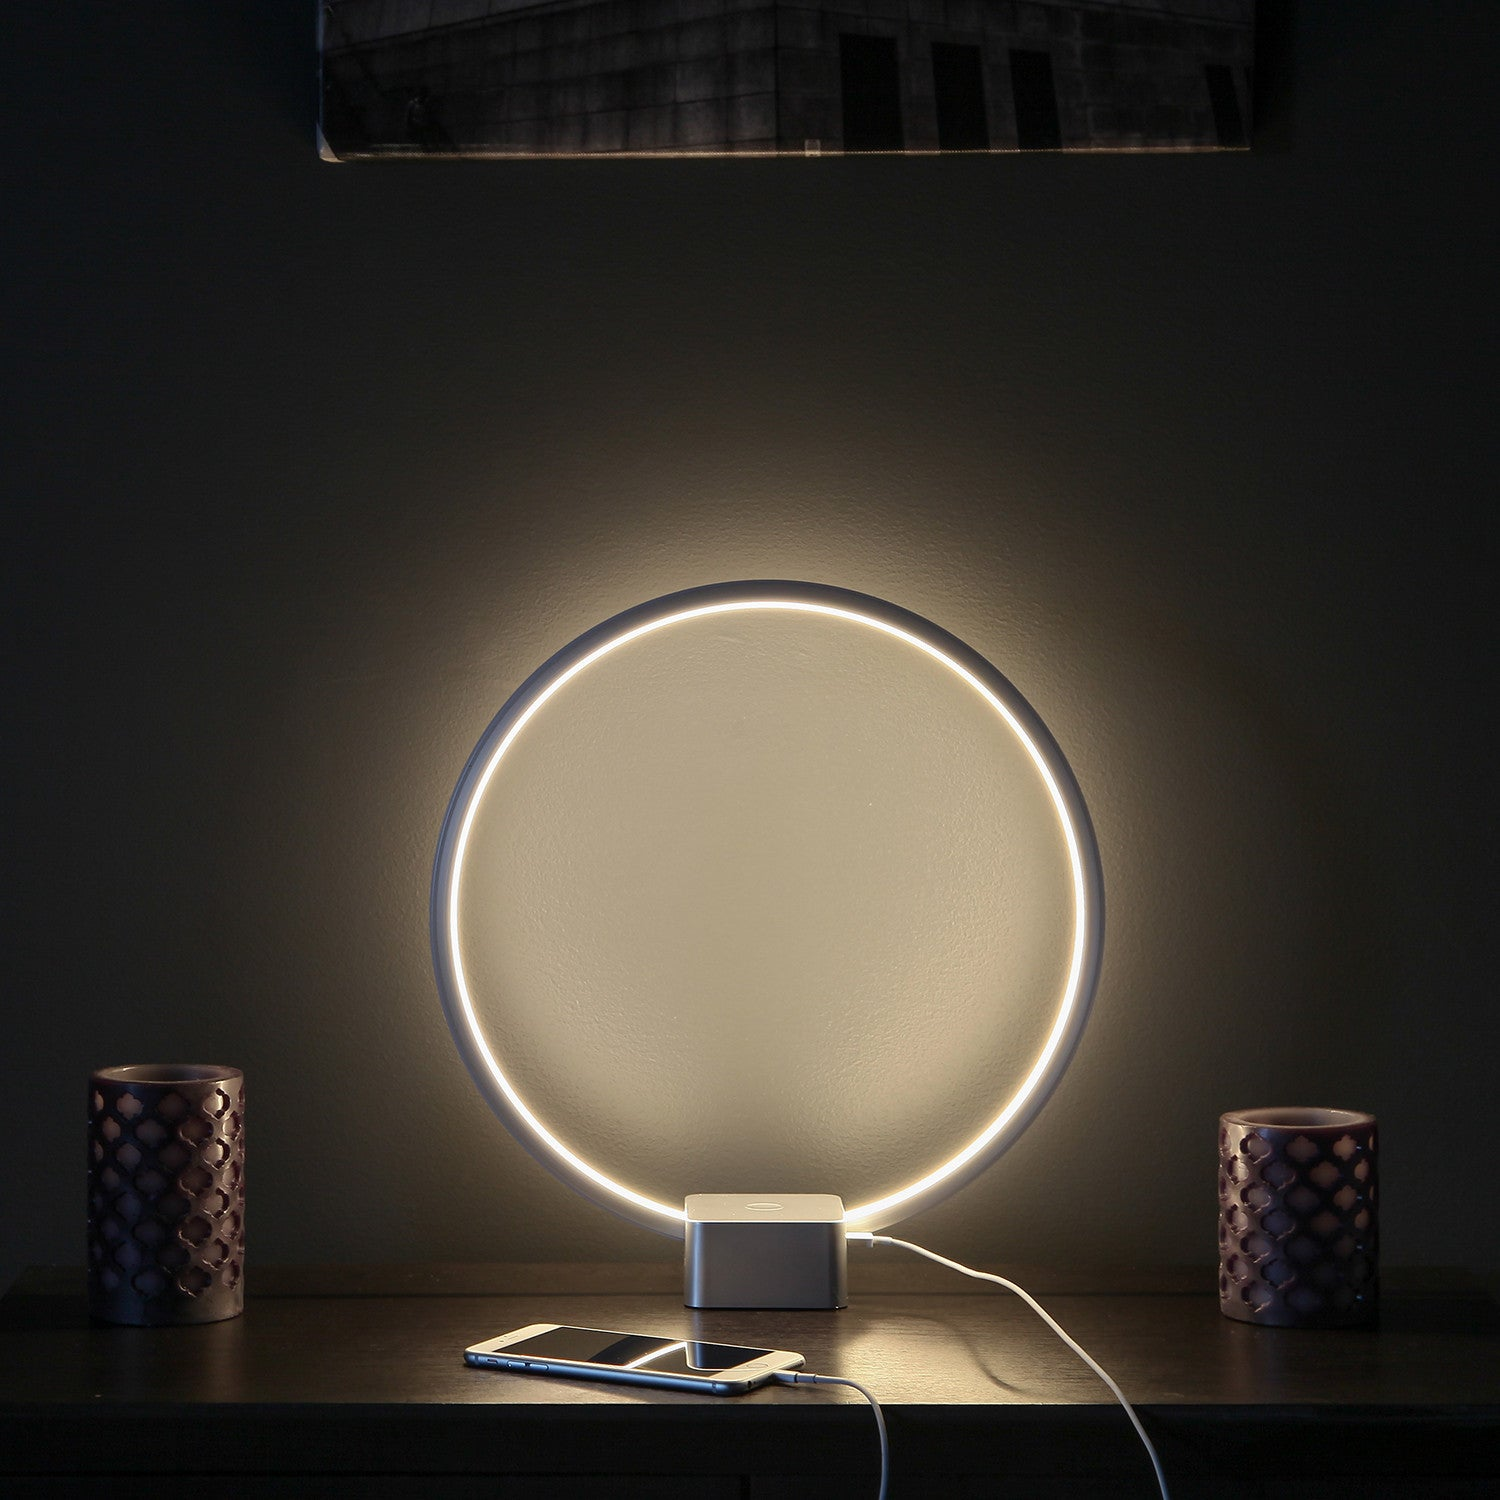 brightech store circle led usb table u0026 desk lamp u2013 bright orb of light with builtin dimmer brings scifi ambiance to spaces u2013 usb port for